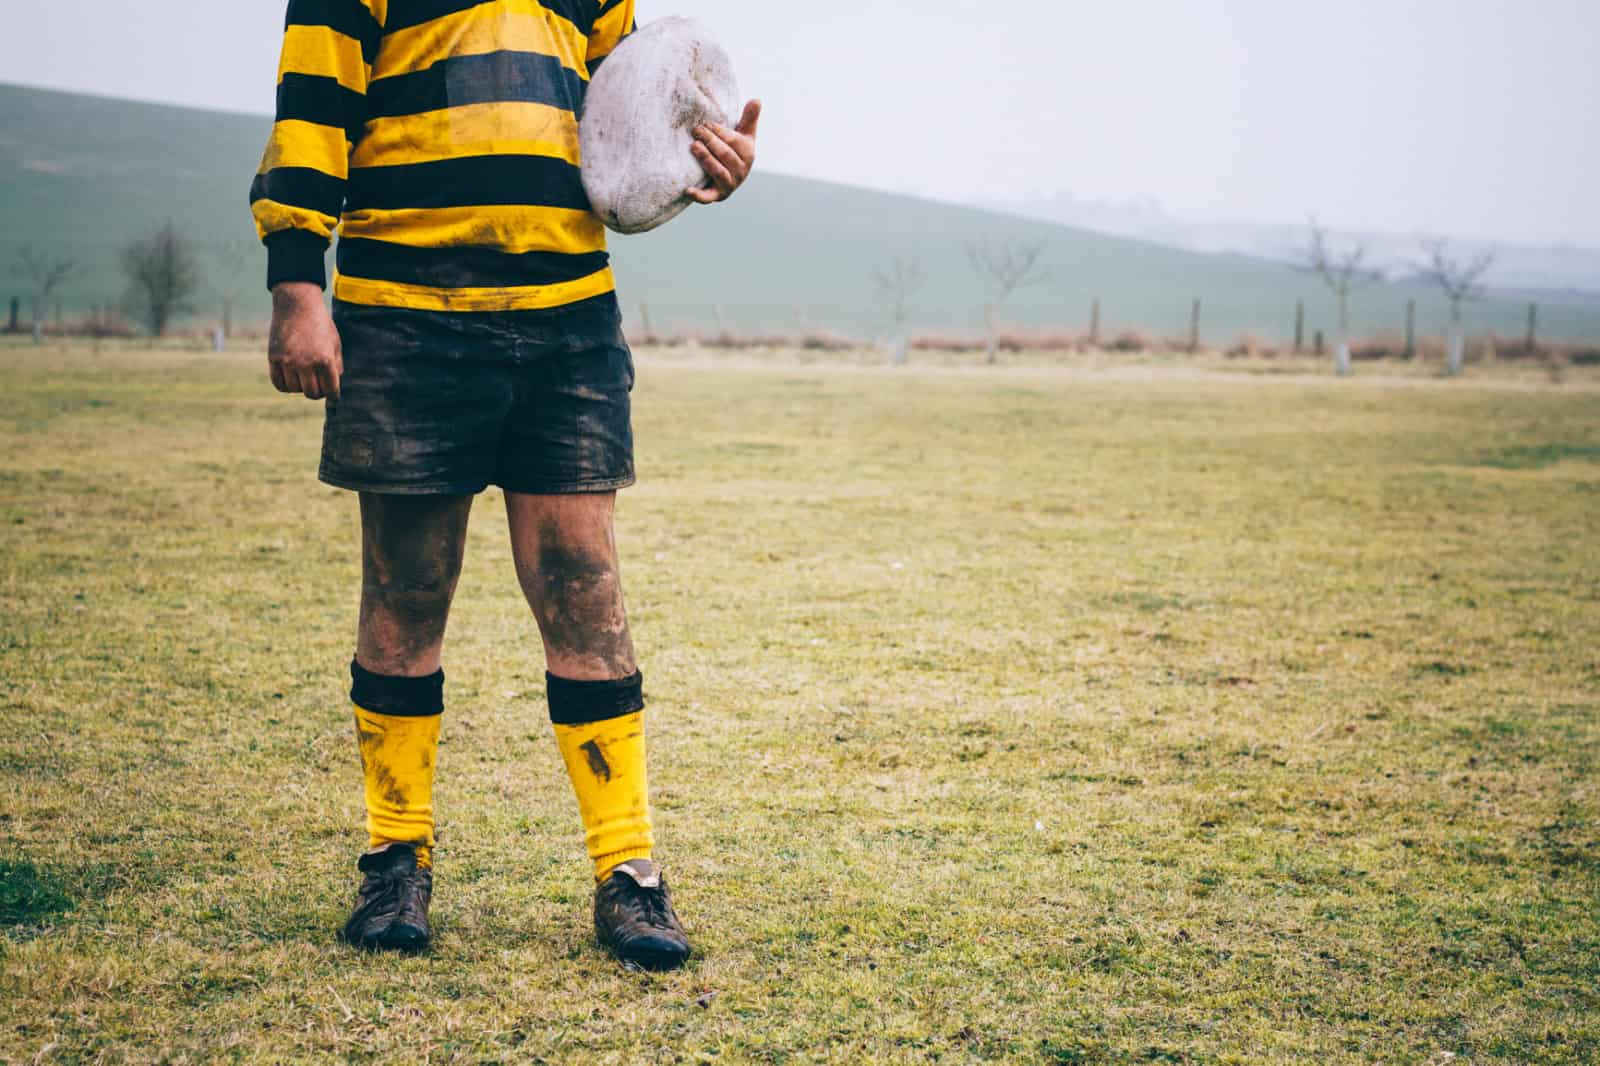 rugby player using innovative rugby tech